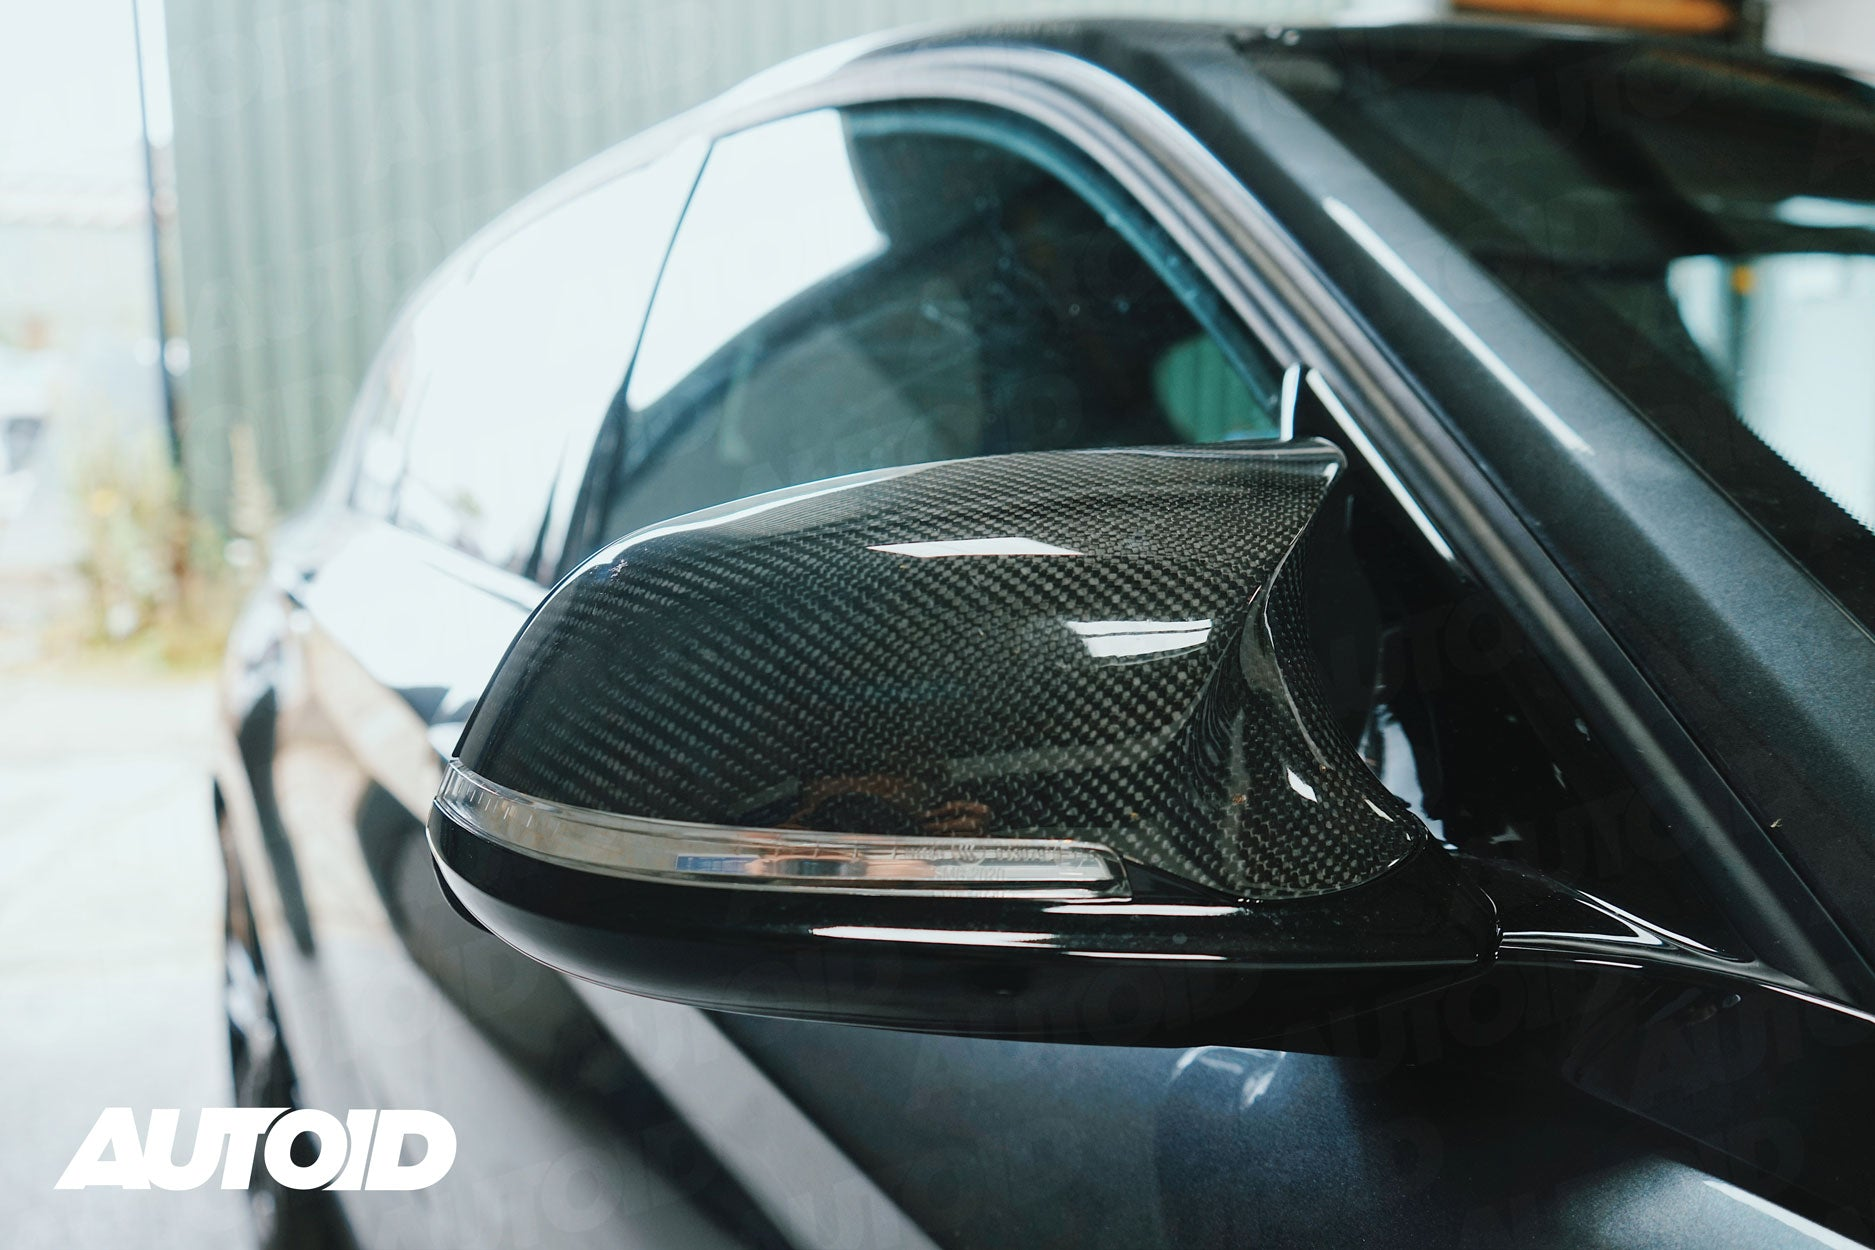 AUTOID TRE Full Carbon Fibre Performance Wing Mirror Unit for BMW (Various Models) _ Front